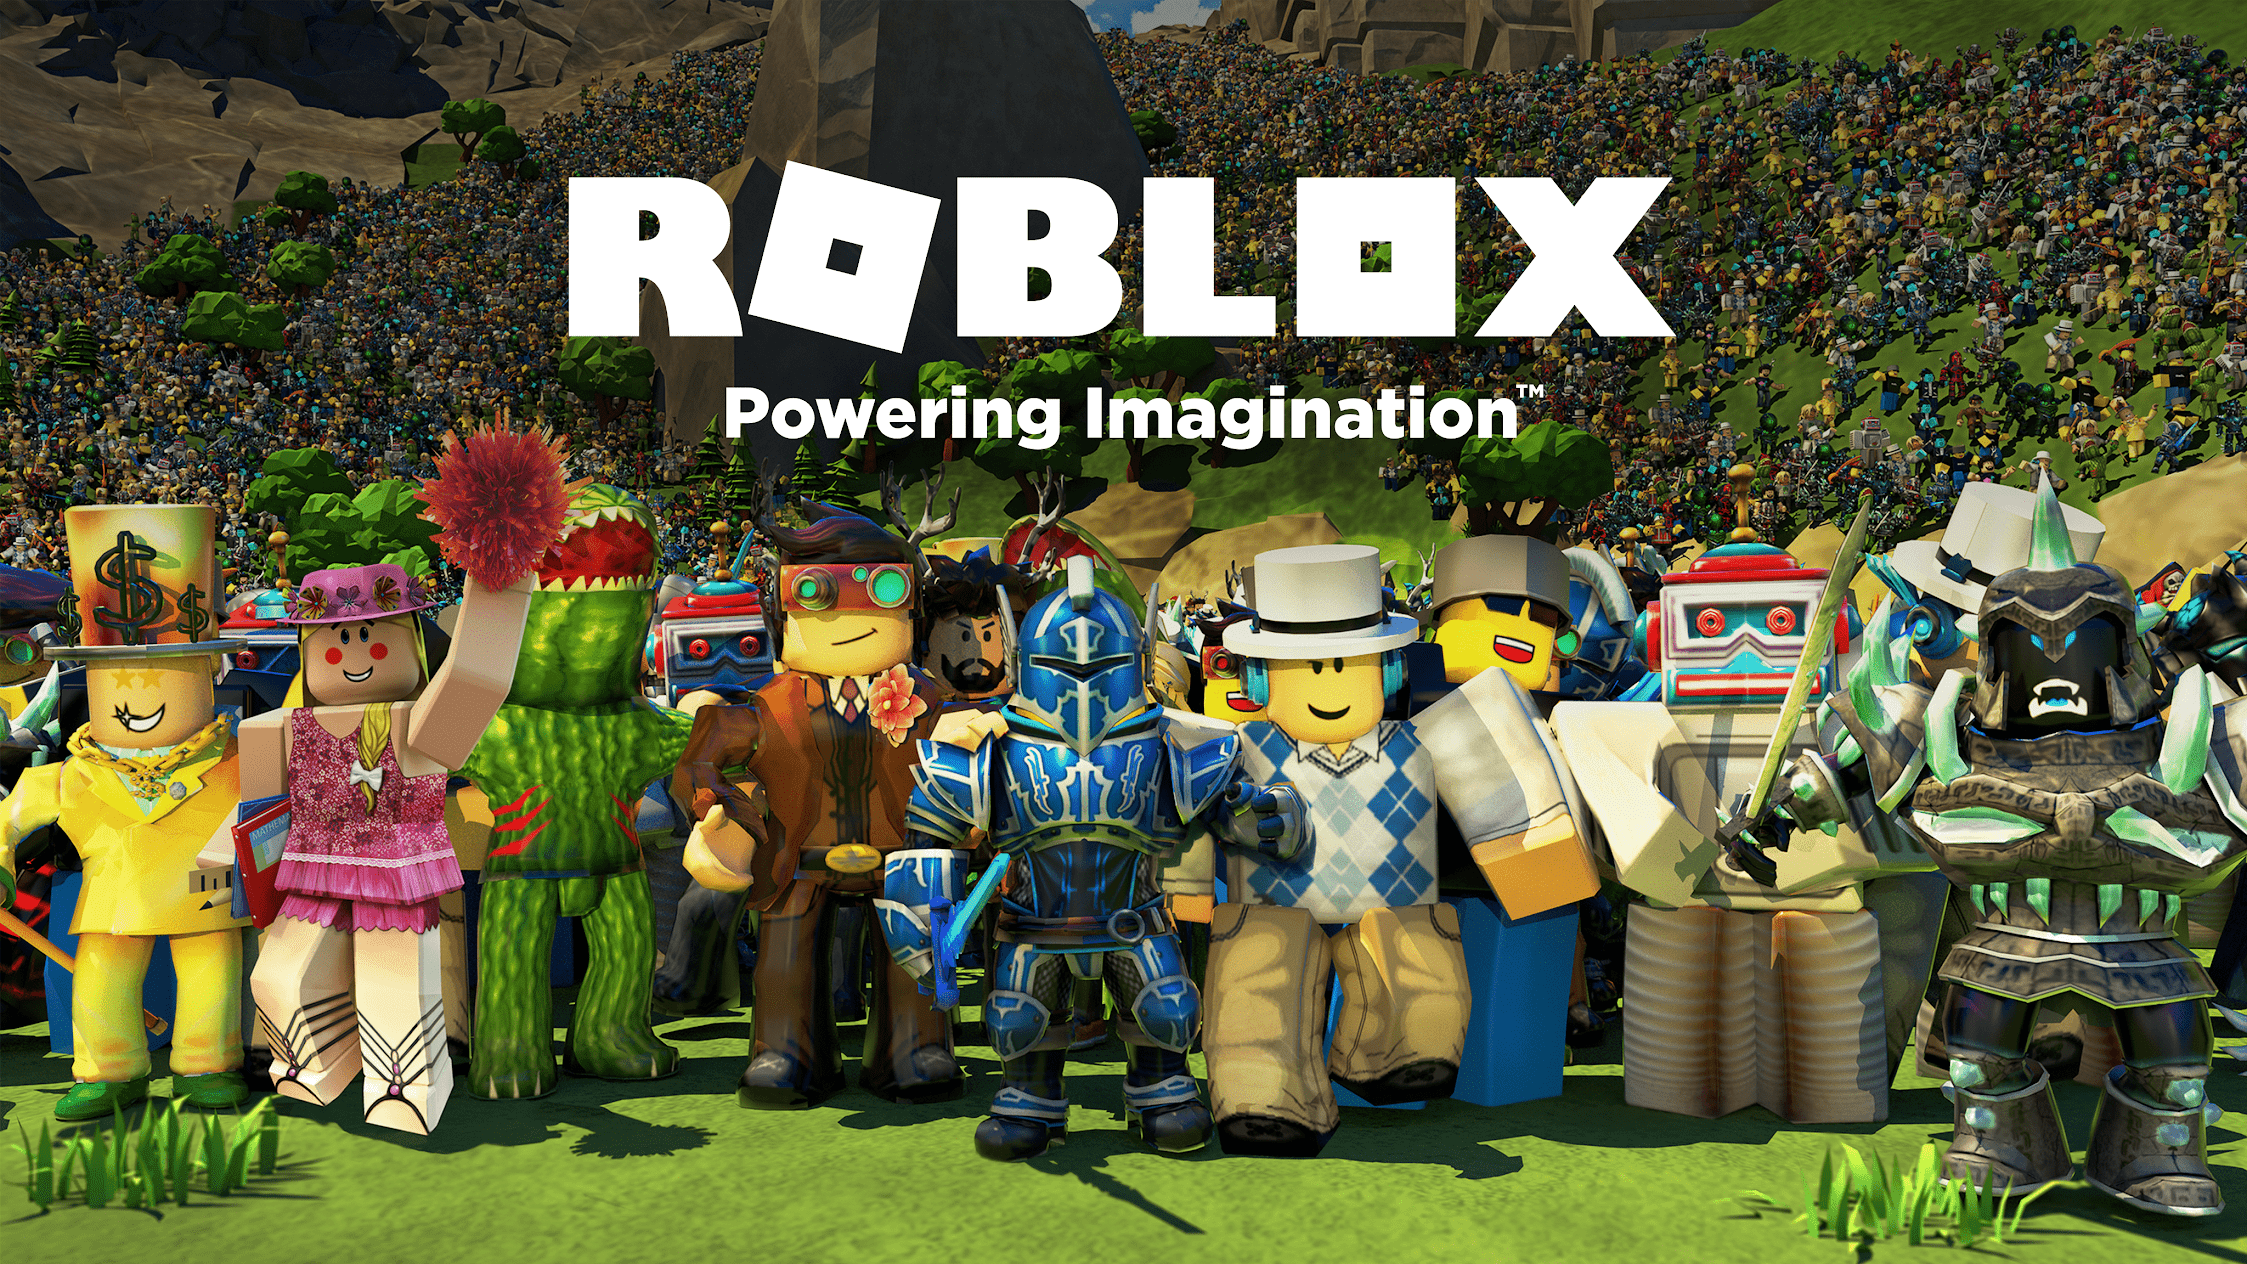 ROBLOX Corporation